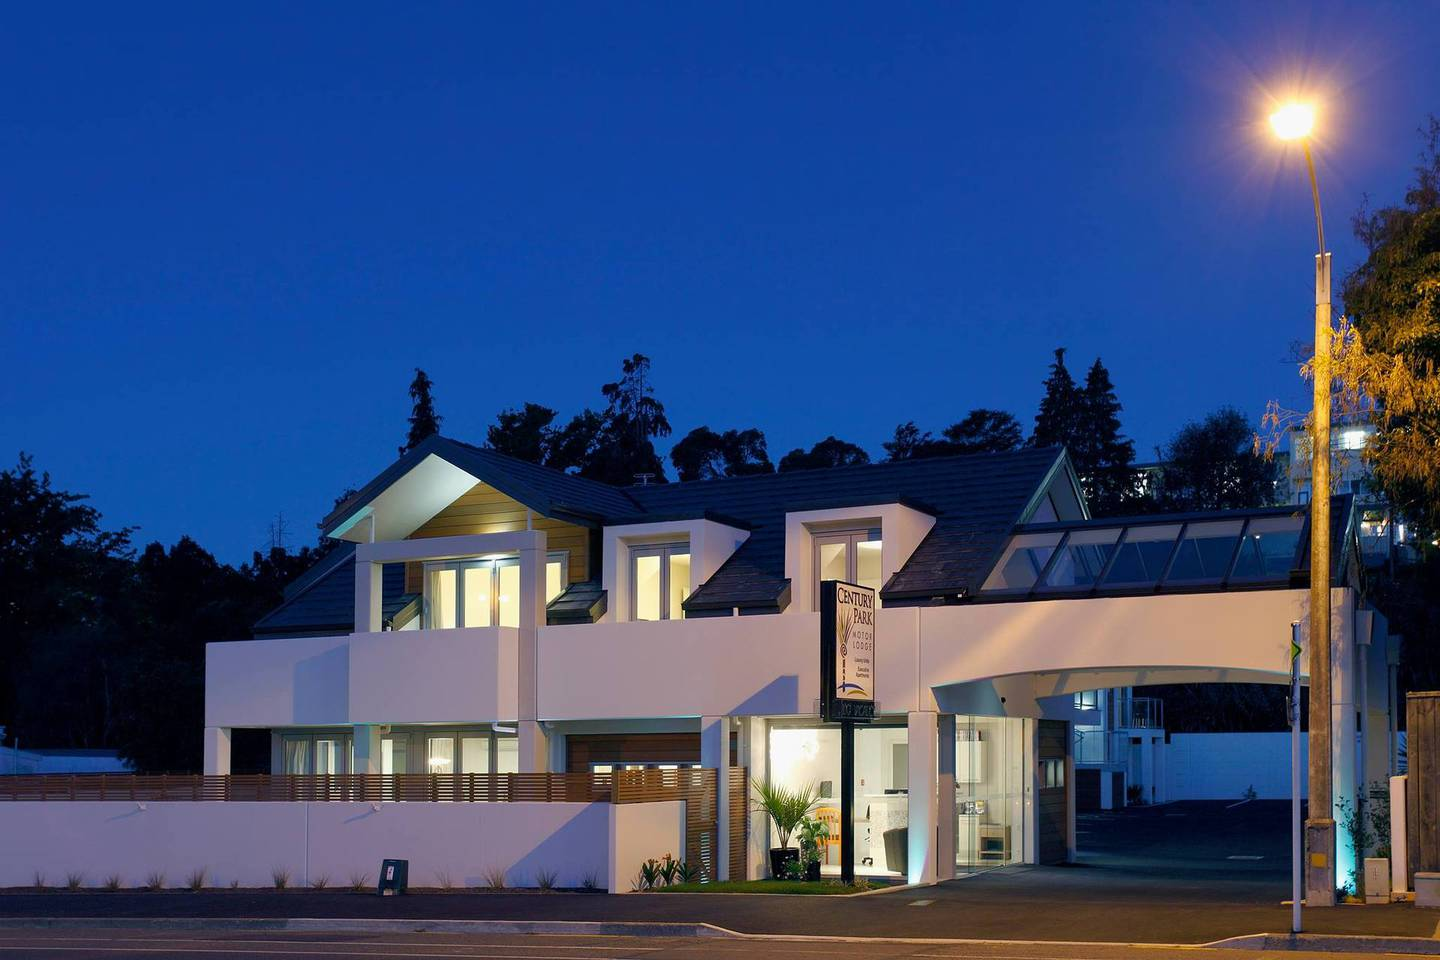 Century Park Motor Lodge Nelson is reportedly facing about $50,000 of overheads will little income to pay the bills. Photo / Supplied